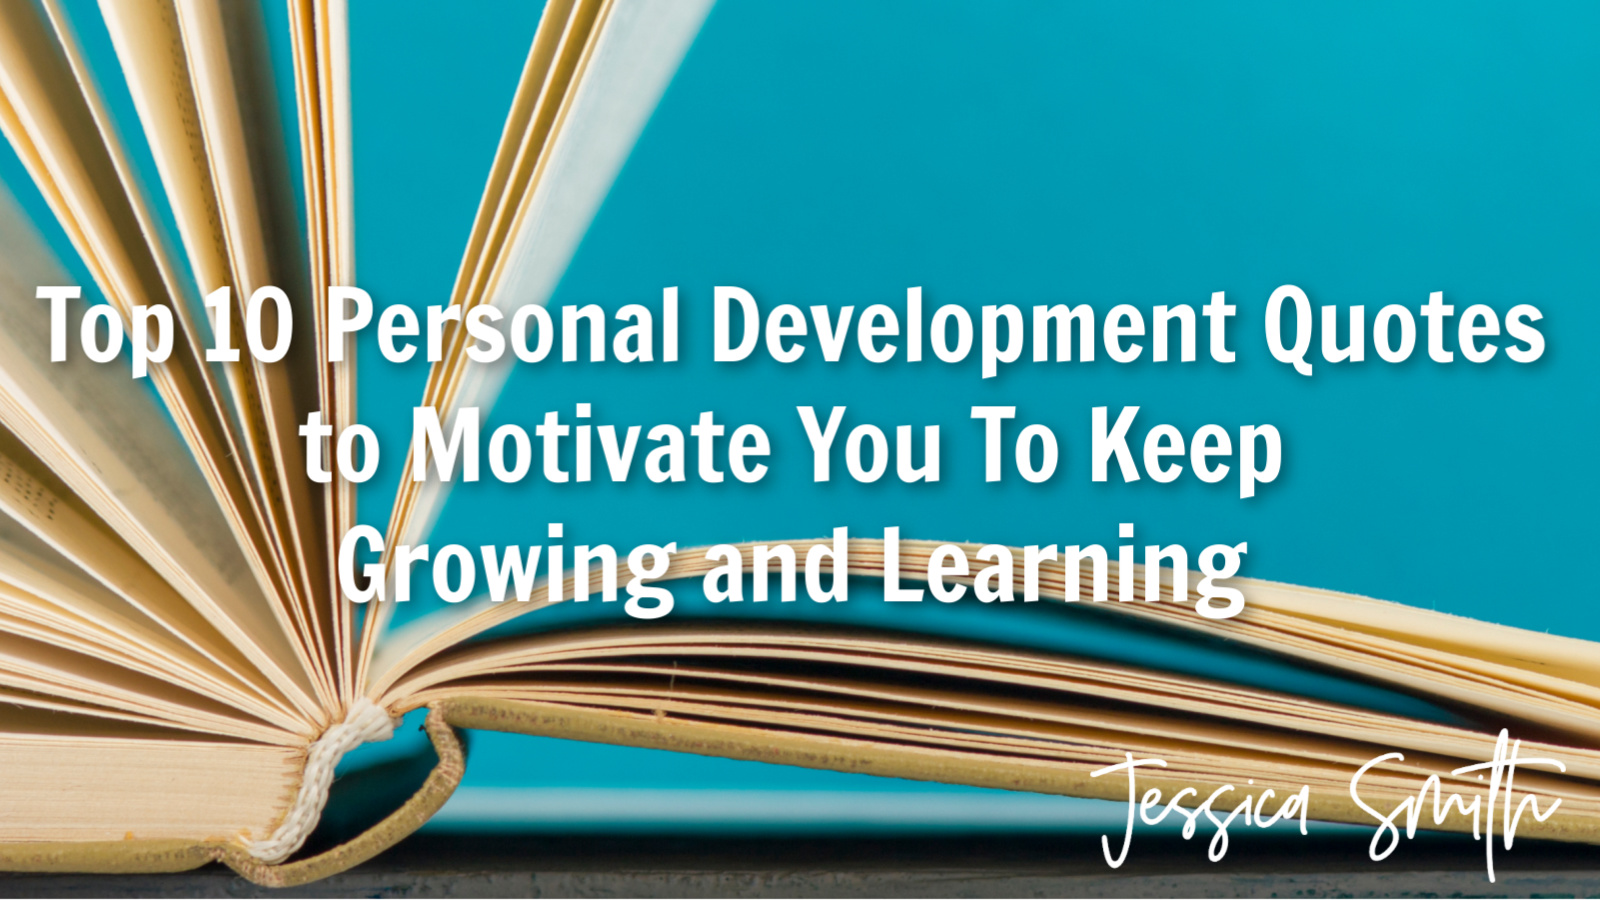 Top 10 Personal Development Quotes to Motivate You To Keep Growing and Learning